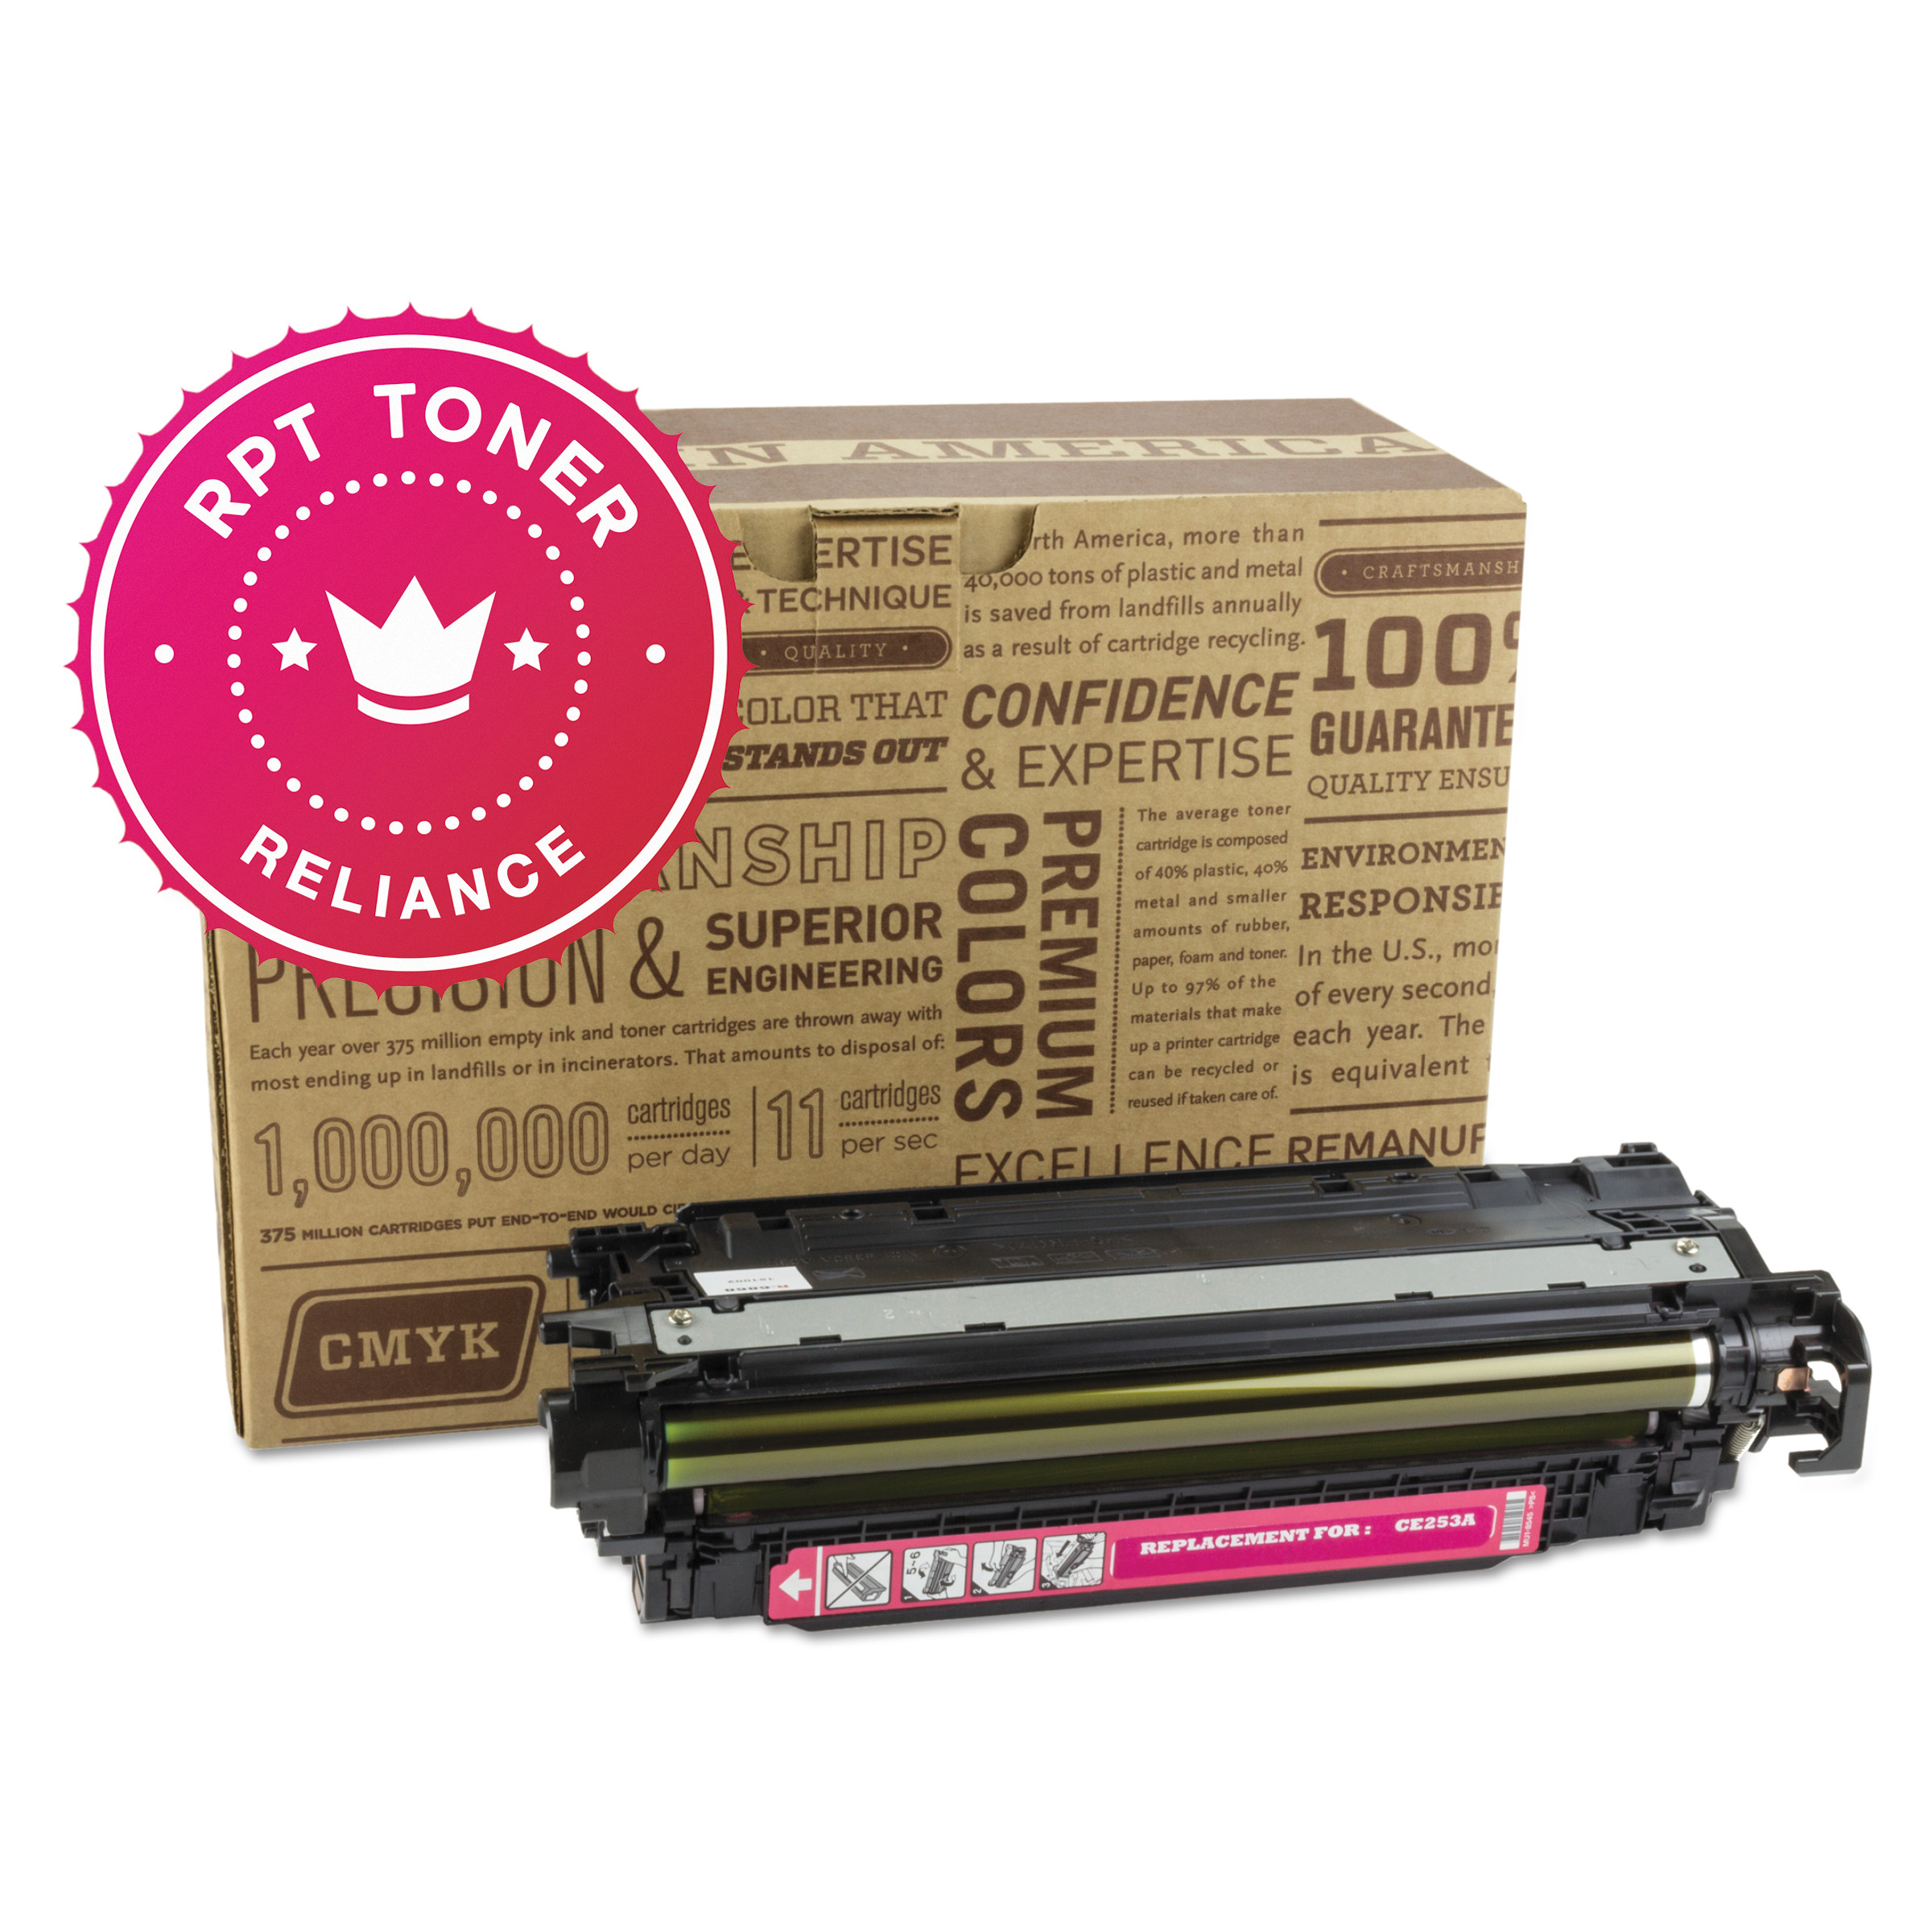 Reliance Remanufactured CE253A (504A) Toner, Magenta